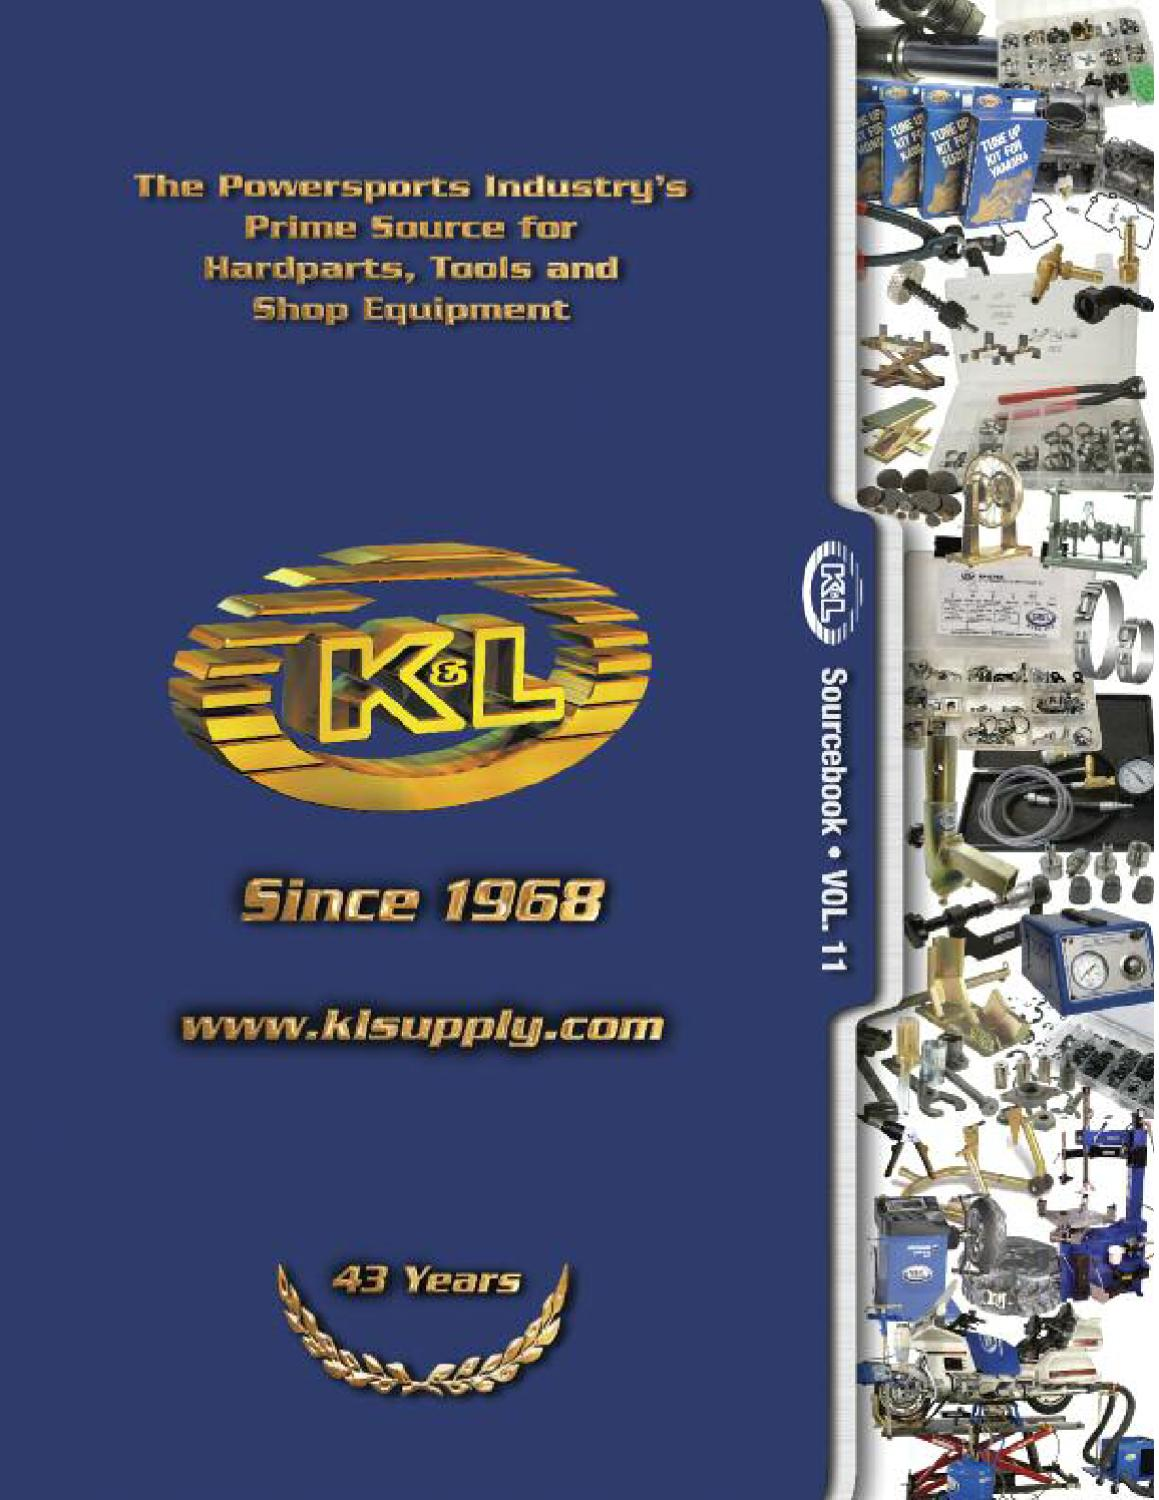 Kl Catalog 2011 By Klsupply Issuu A Cdi Ignition Wiring Diagram For 185s